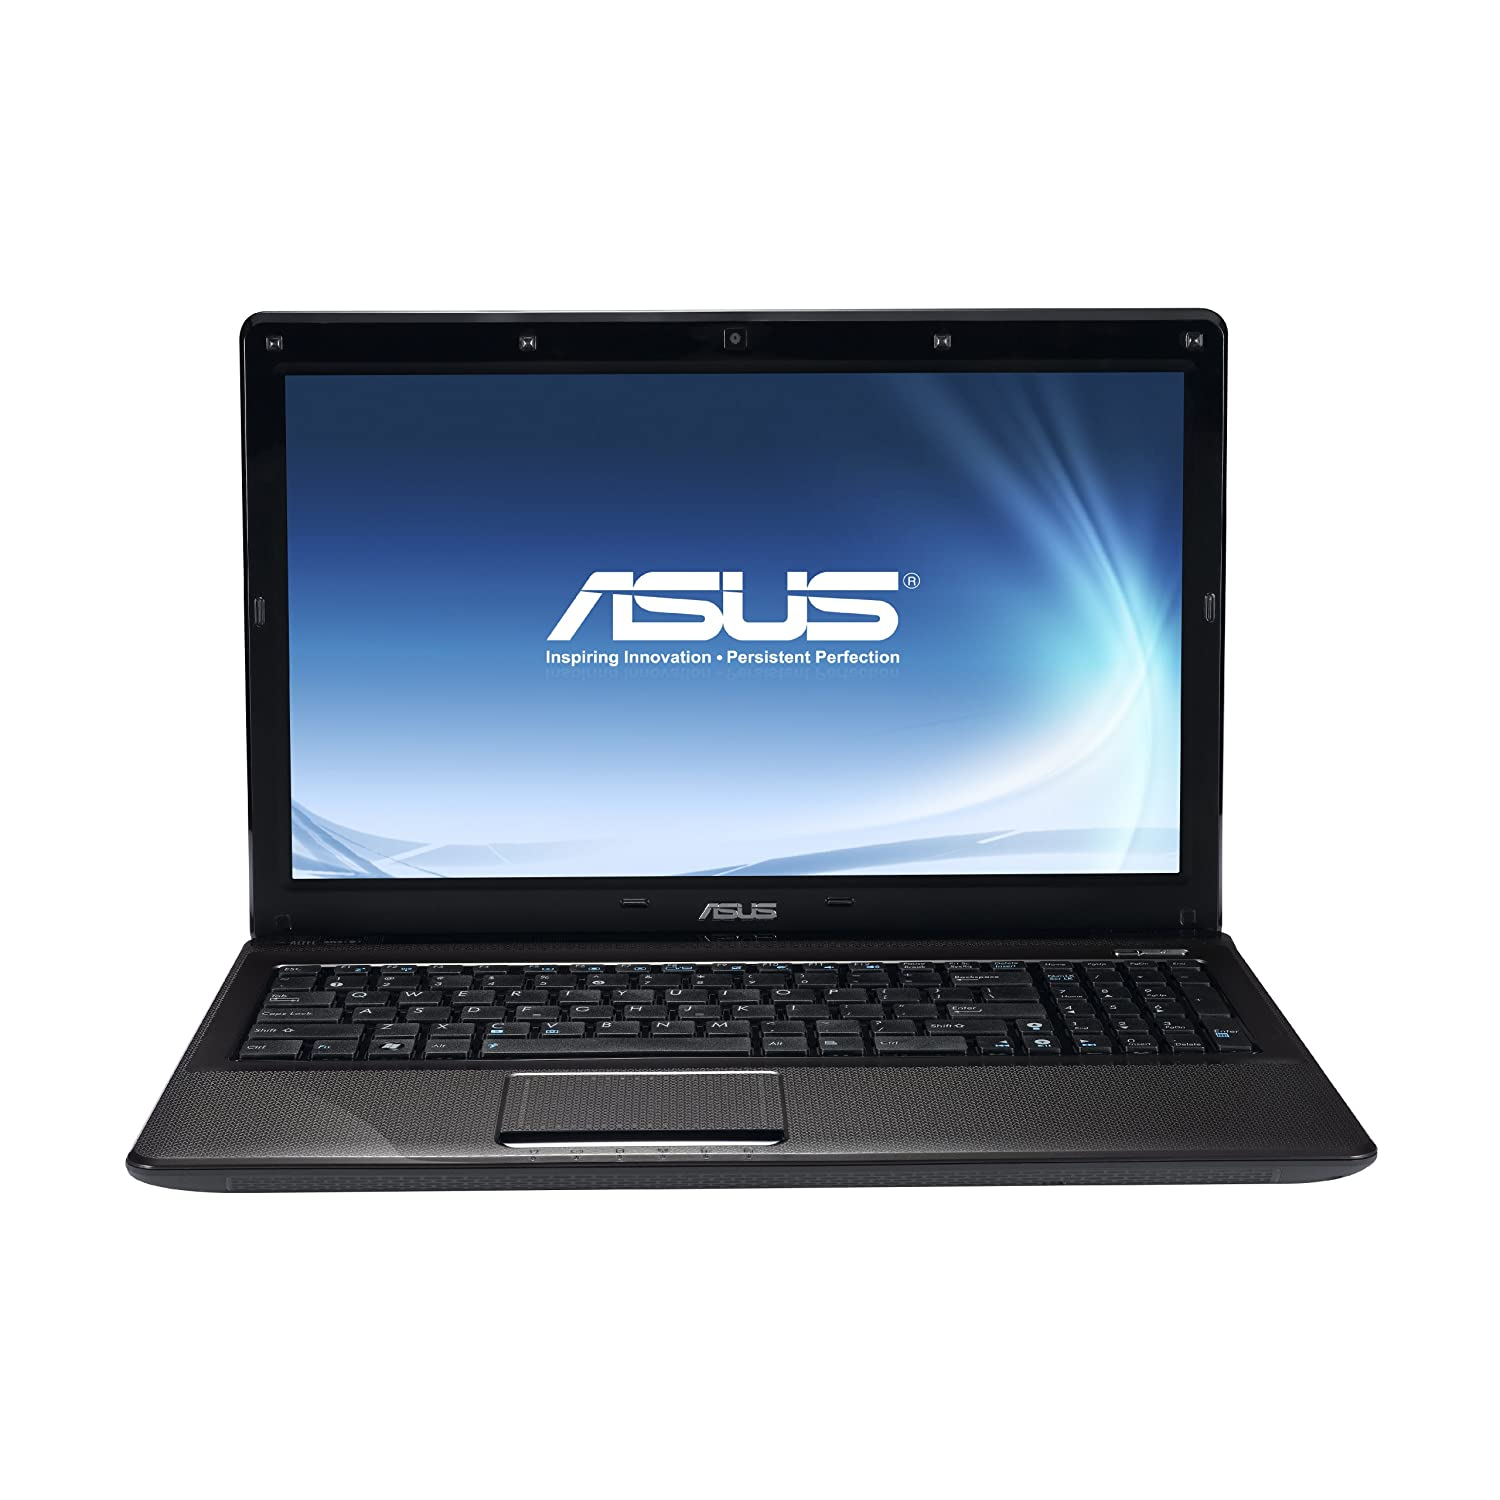 asus ai recovery utility 1.0.24 download